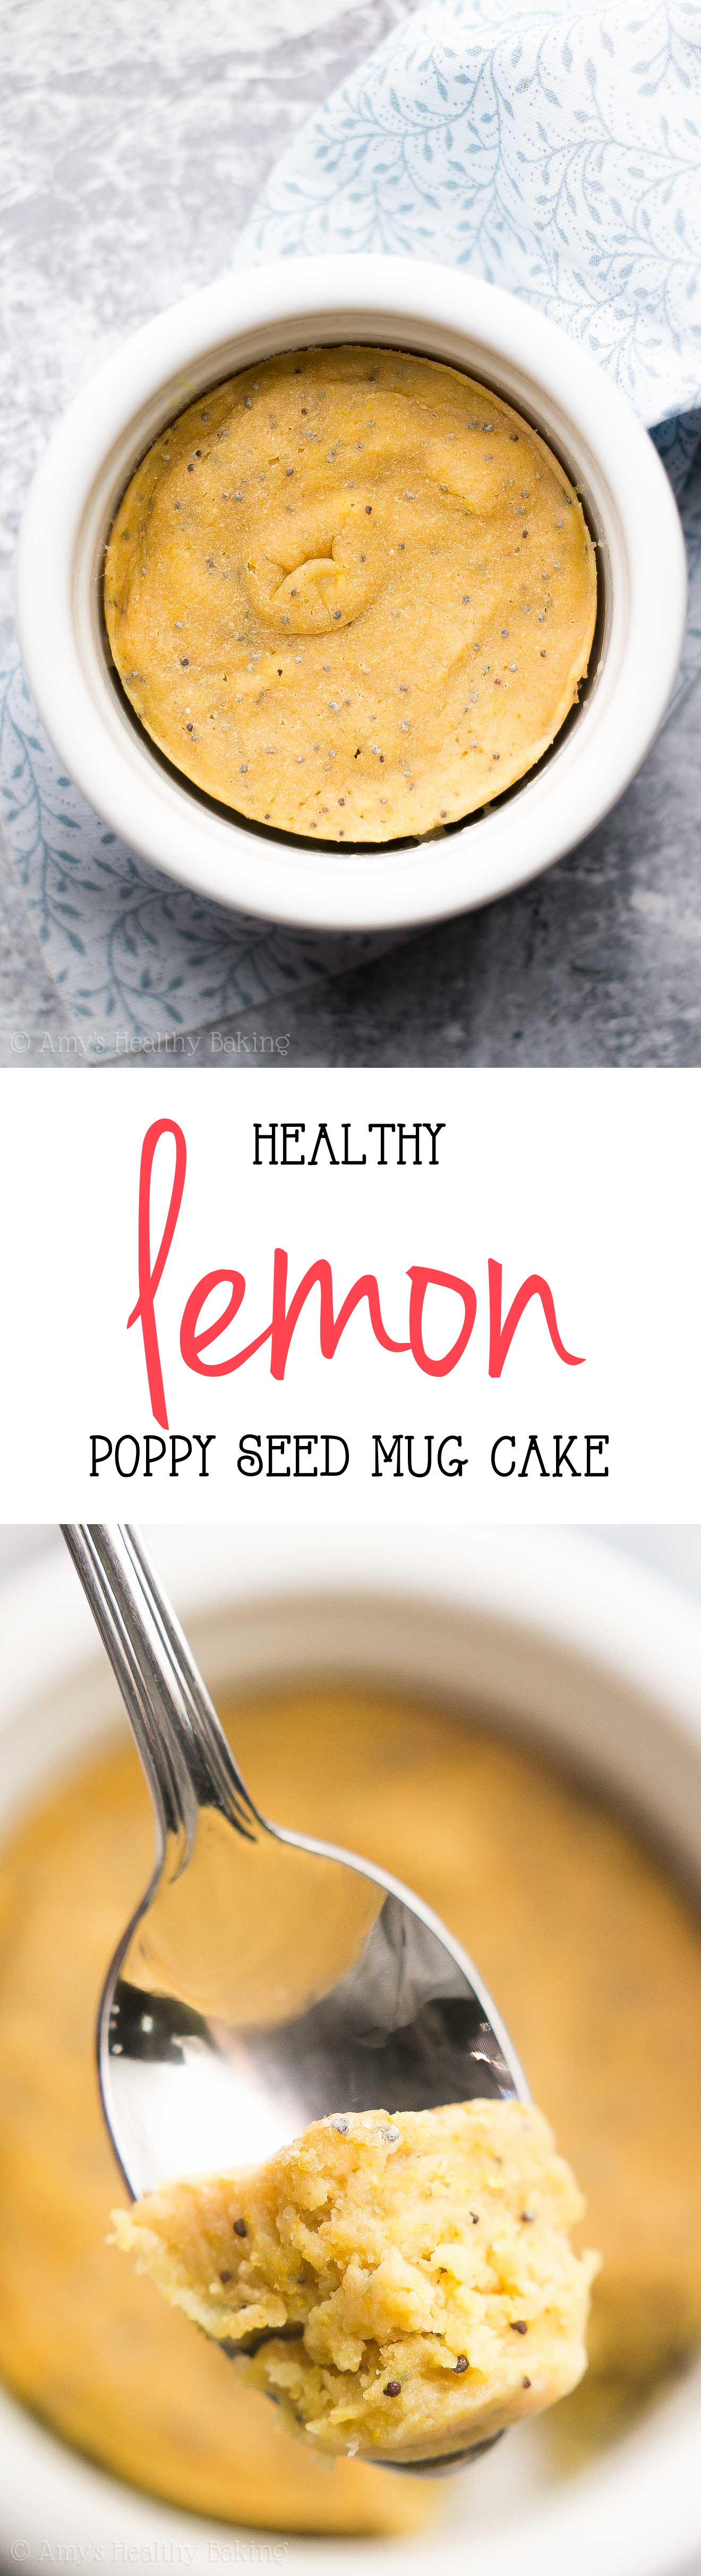 This {HEALTHY!} Lemon Poppy Seed Mug Cake recipe is amazing! Only 101 calories & ready in 10 minutes! Sweet, tender & perfect for any sweet tooth cravings!